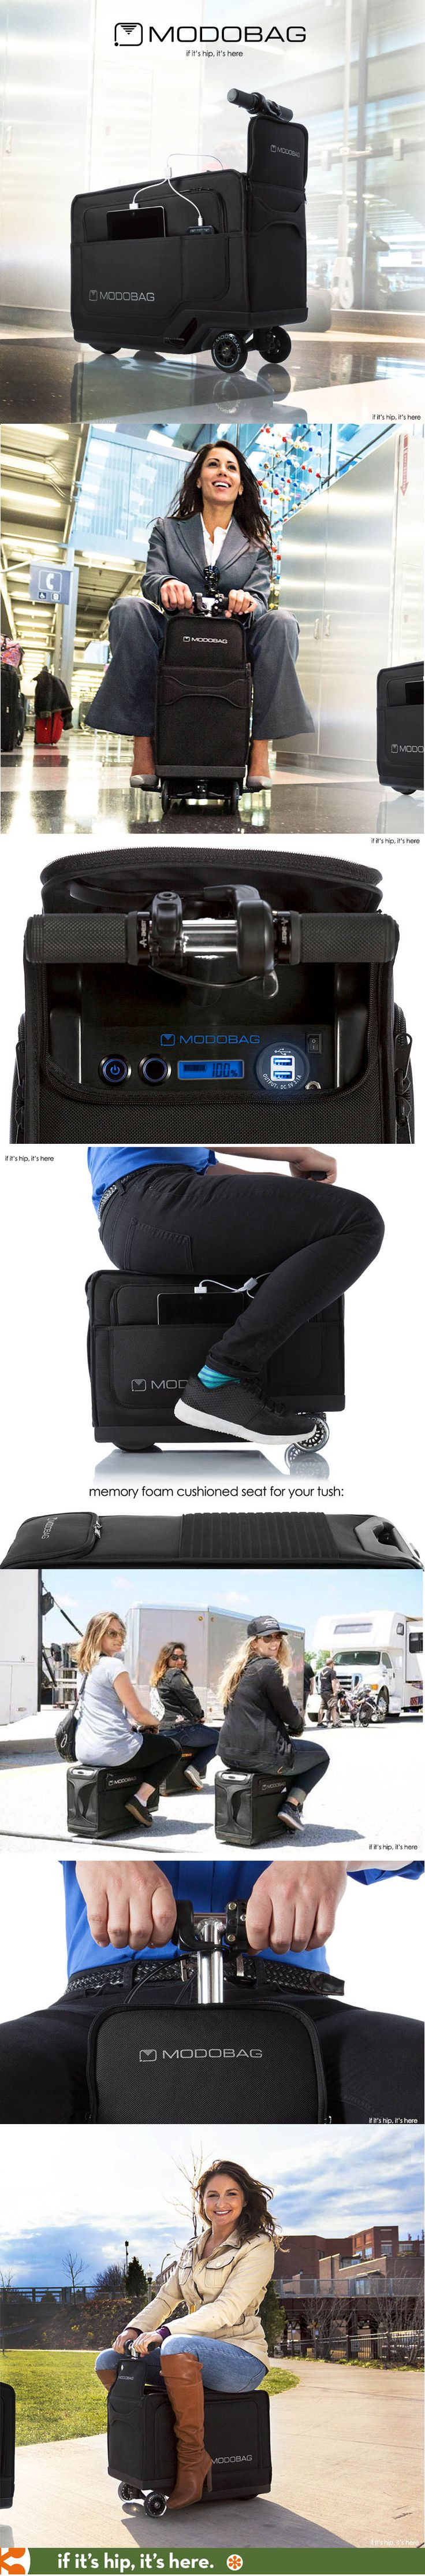 Brilliant! Motorized ride-on luggage holds up to 260 lbs and travels up to 8 miles per hour. And it's a REAL product.